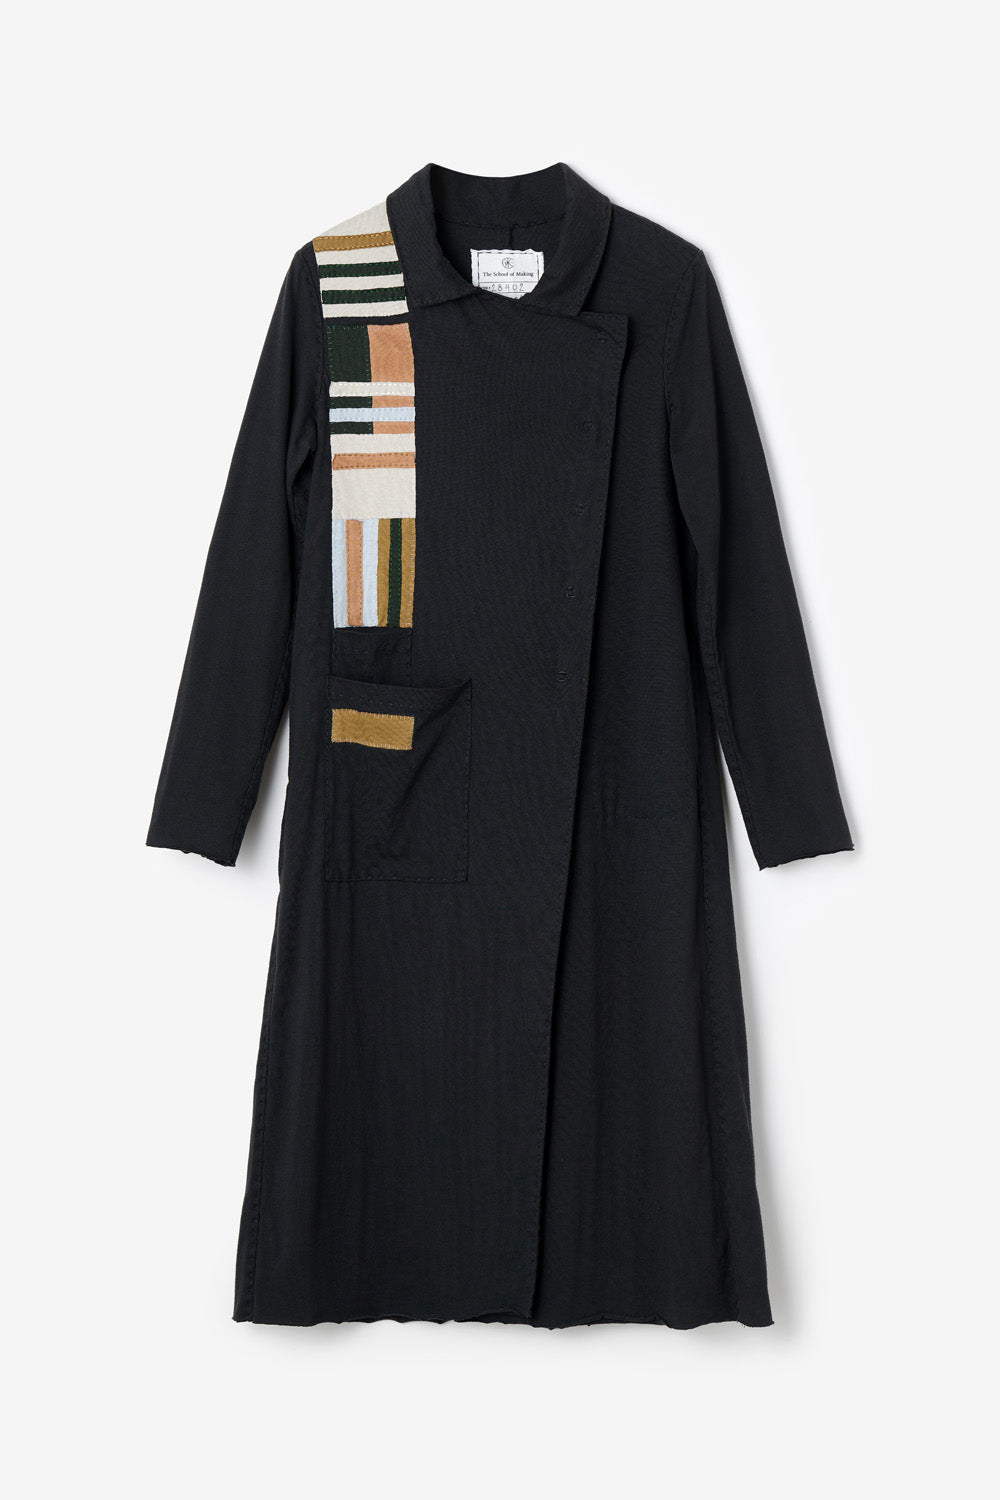 The School of Making Asymmetrical Trench Bundle Hand-Sewn Coat with Colorblock Applique